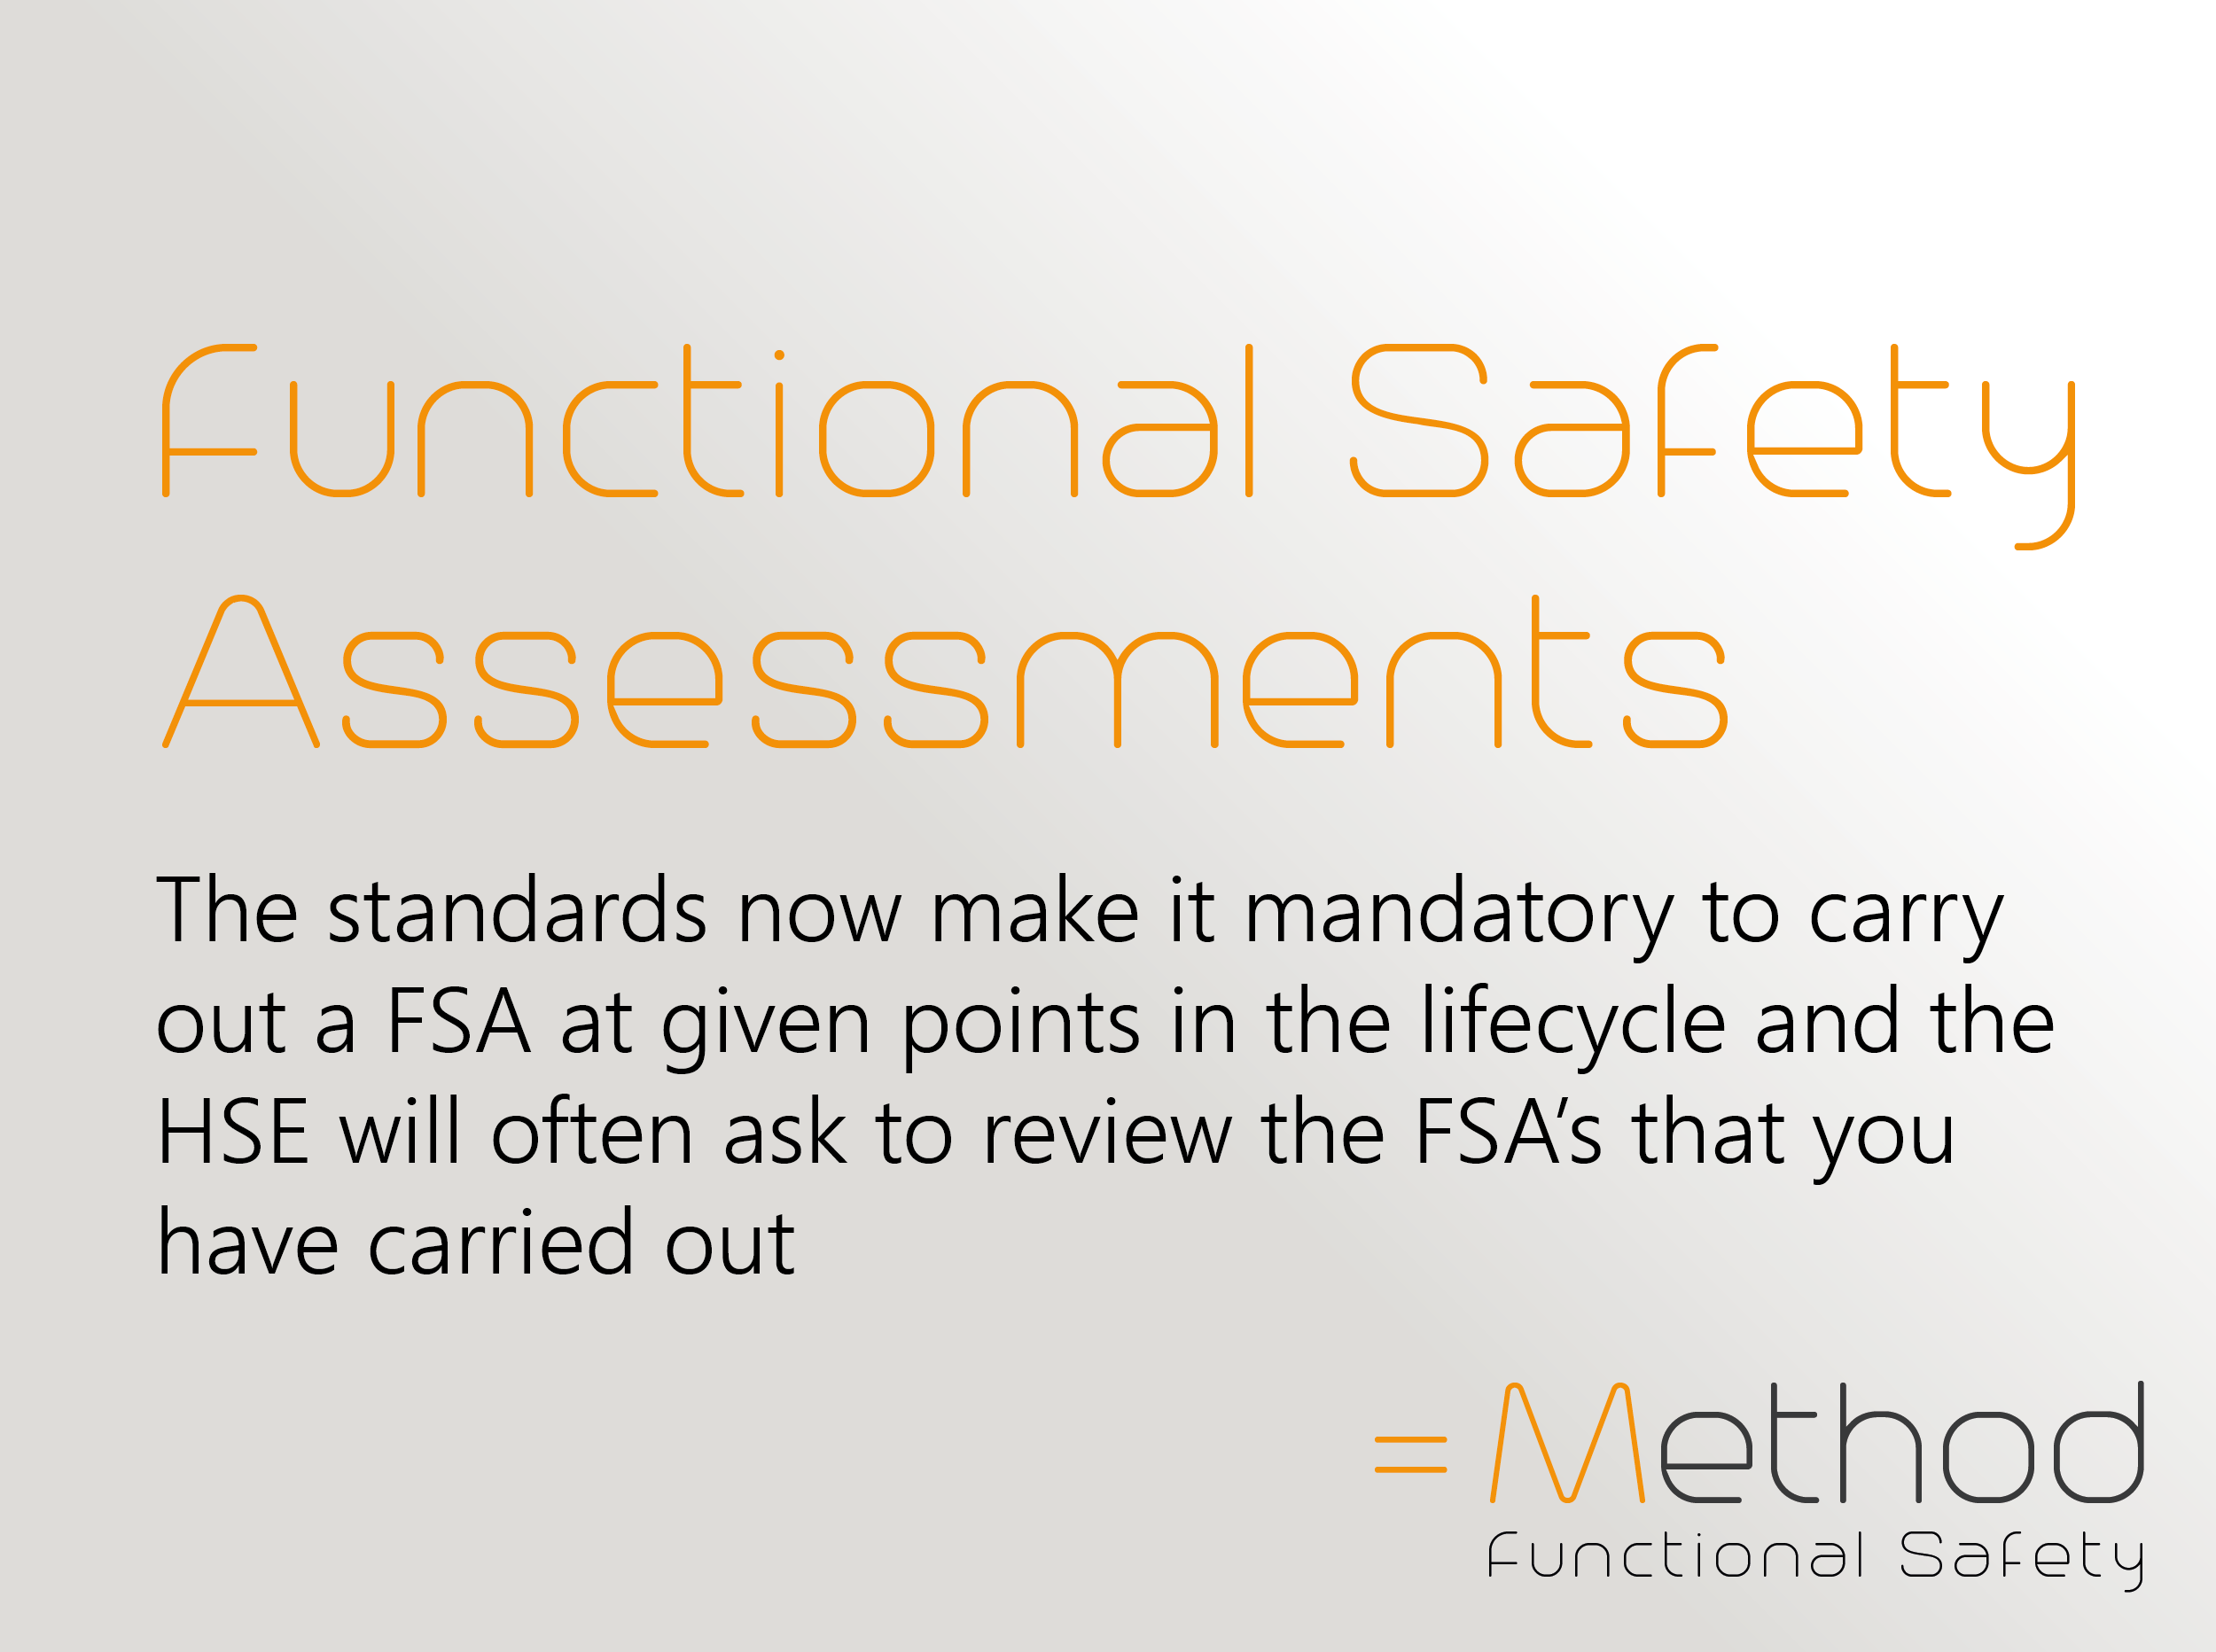 The Focus on Functional Safety Assessments by the HSE is increasing